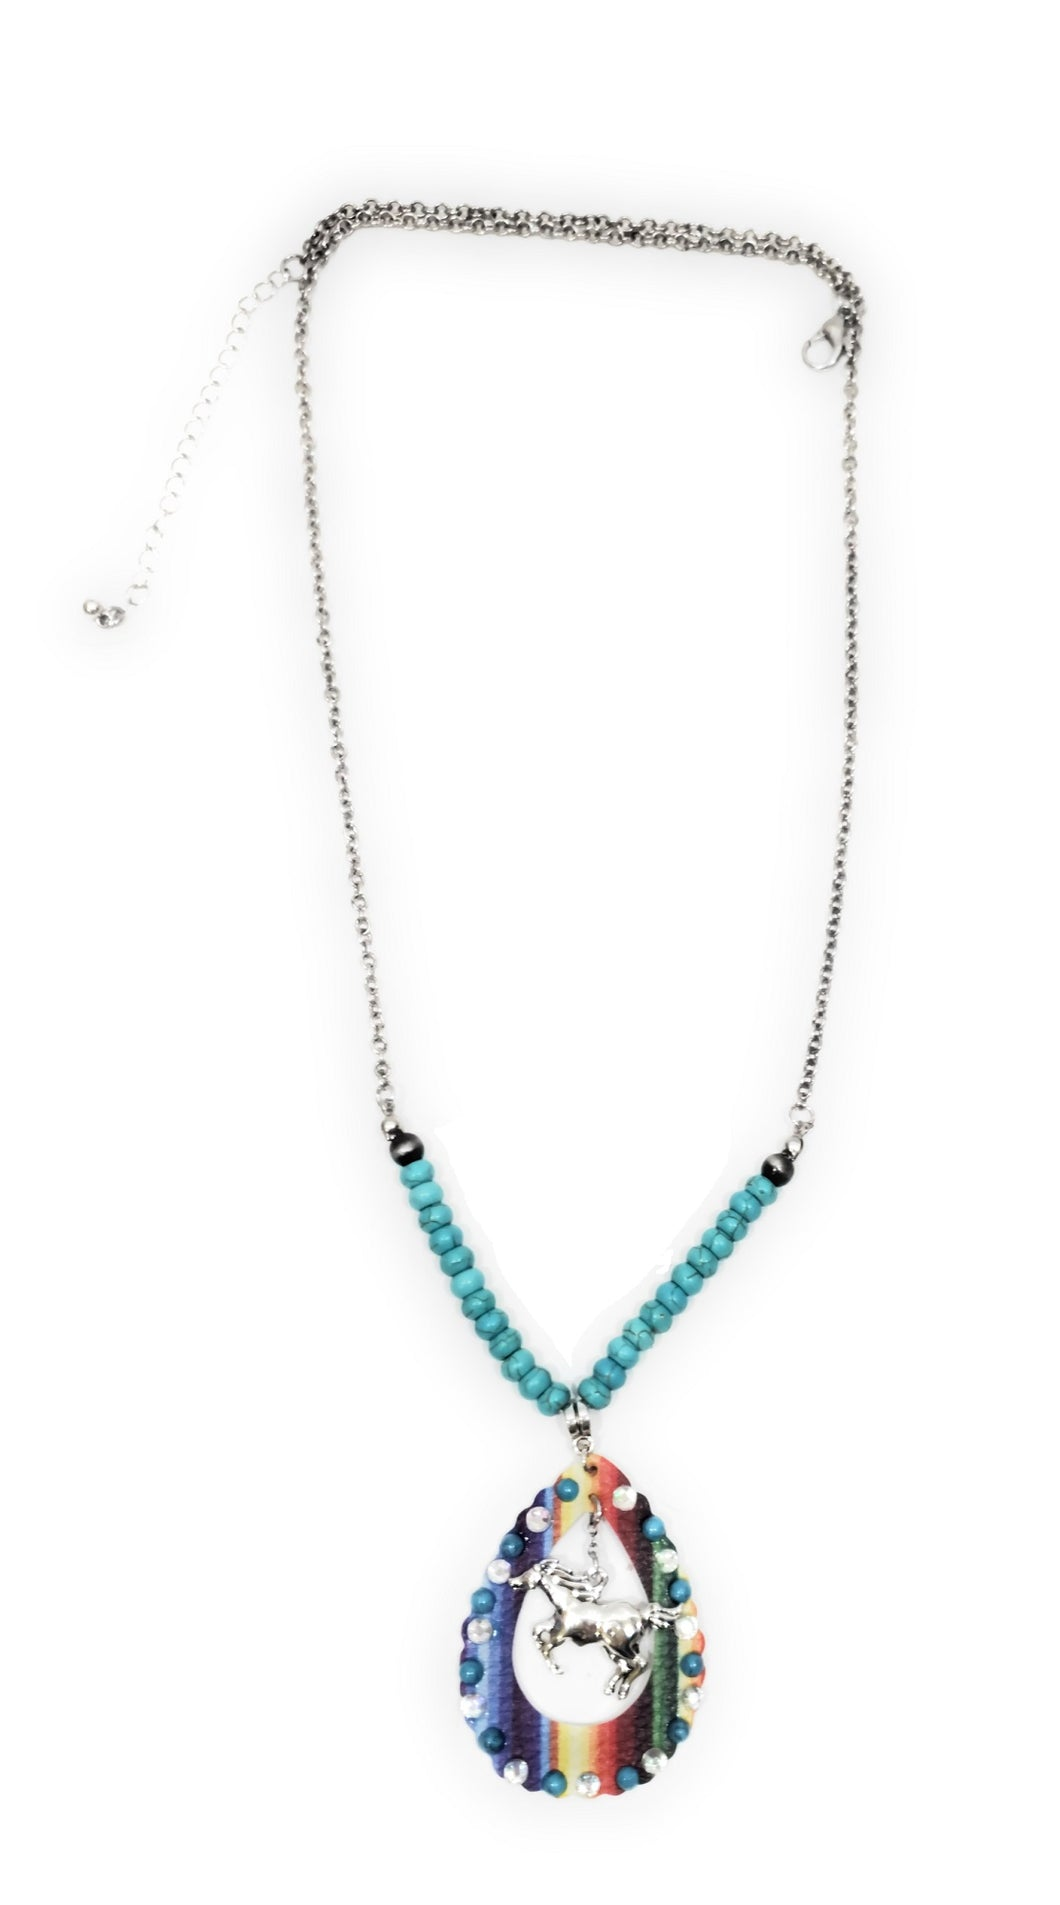 Serape Aztec Horse Necklace Rhinestone Beaded Western Jewelry Turquoise Blue 27